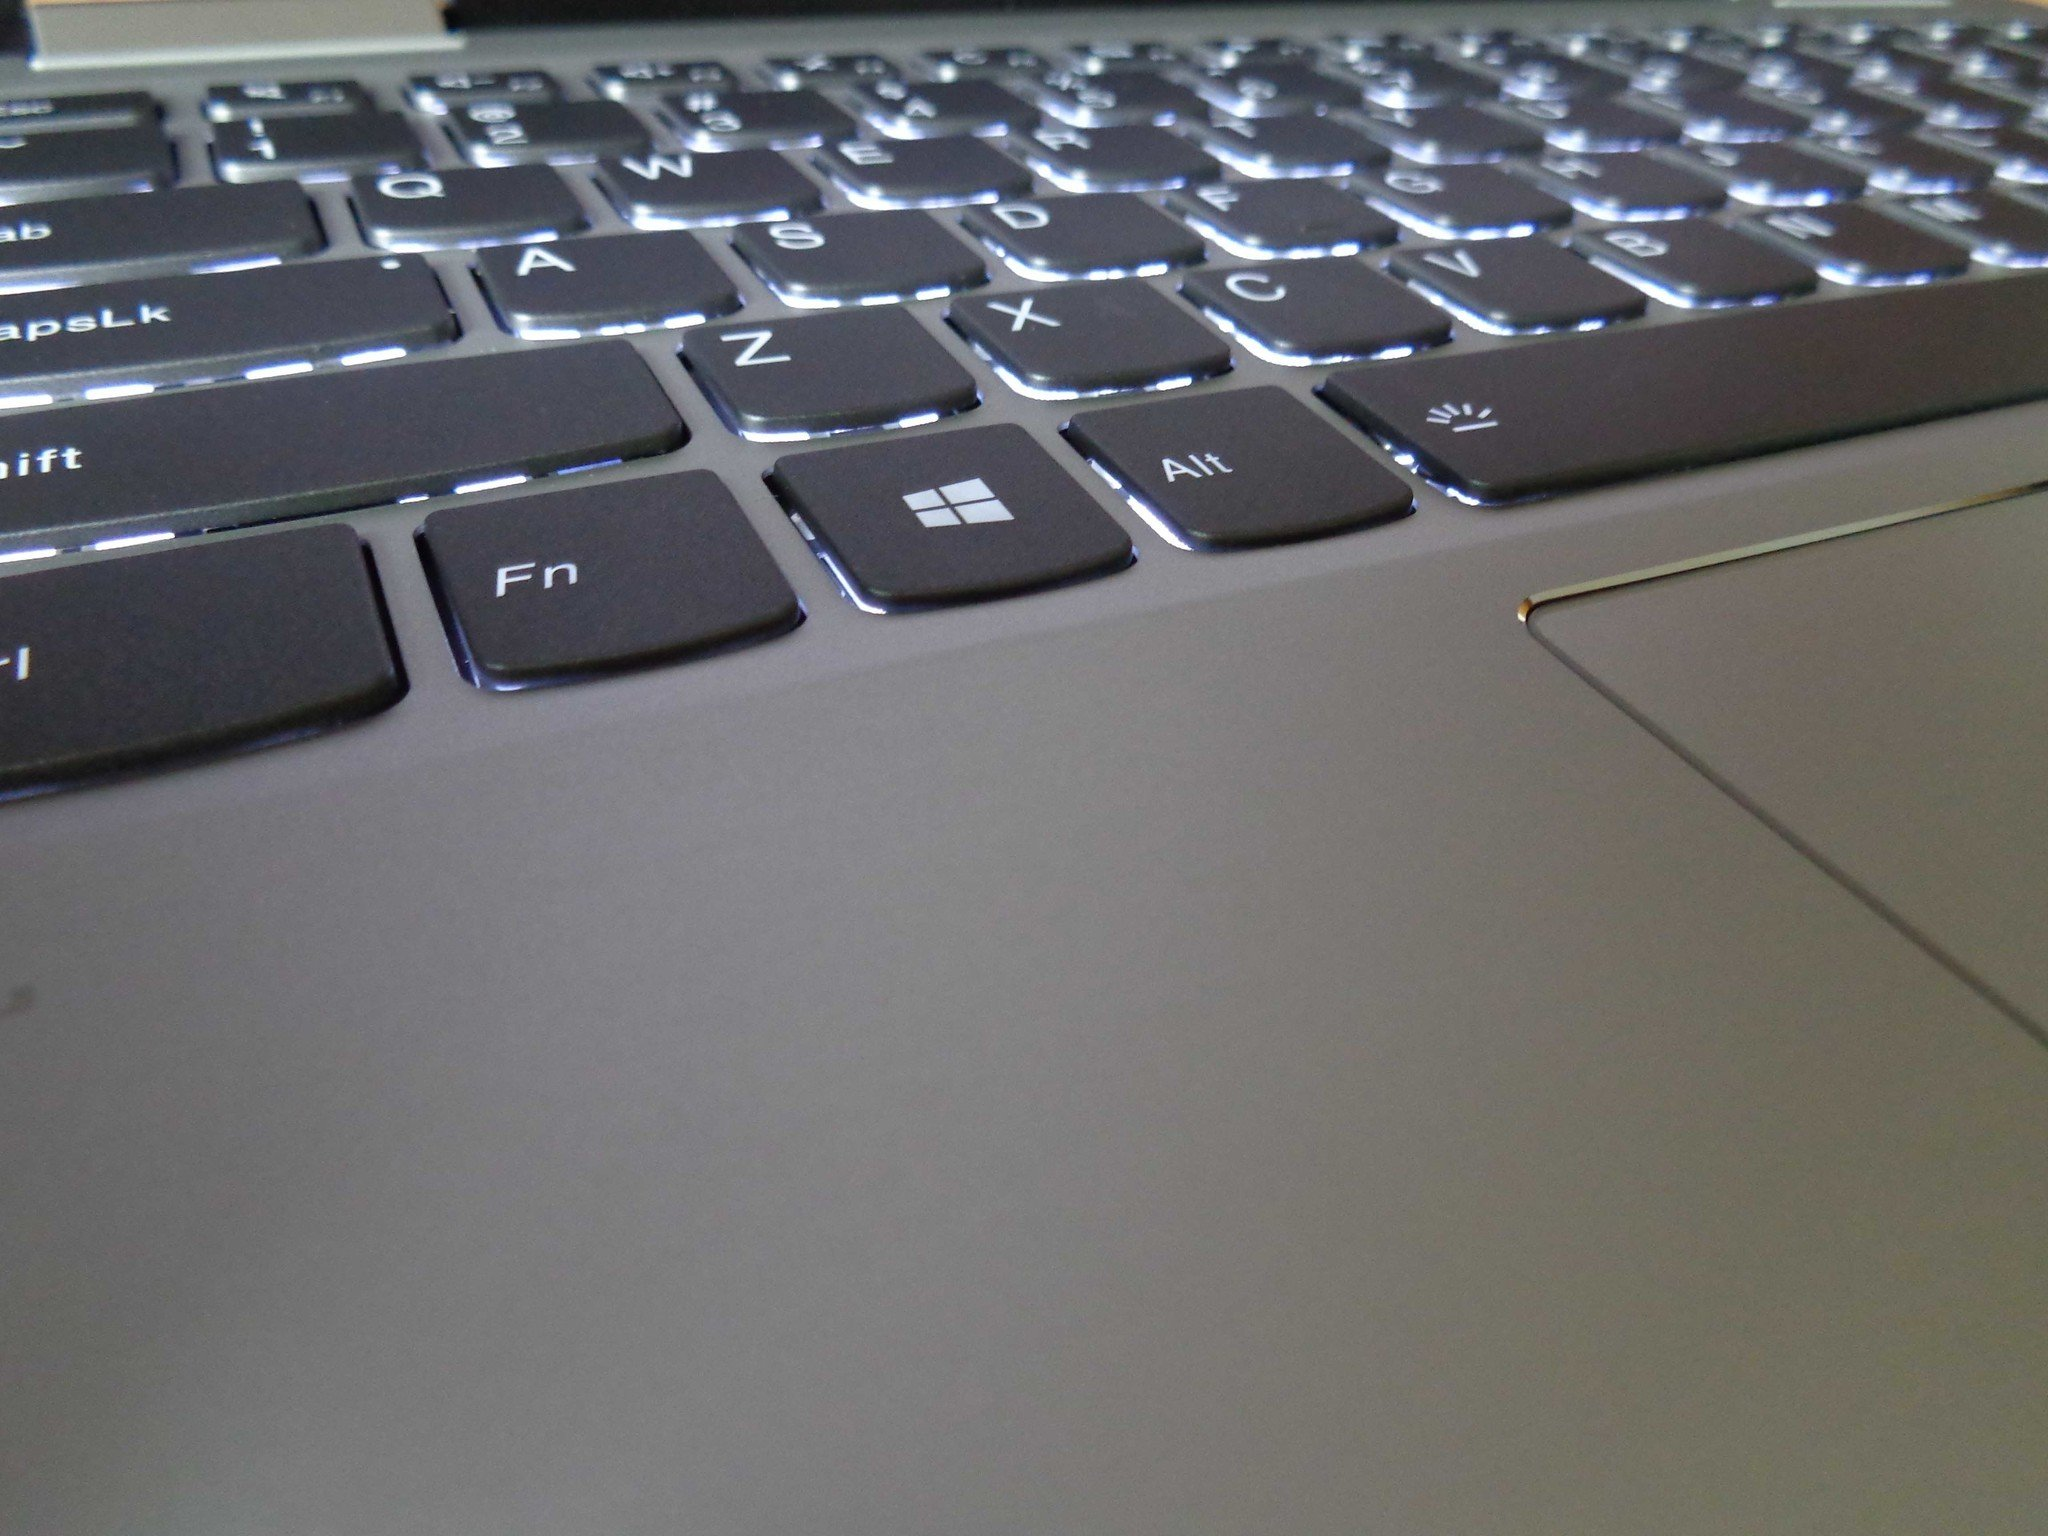 Activate Backlight Keyboard Lenovo - Year of Clean Water